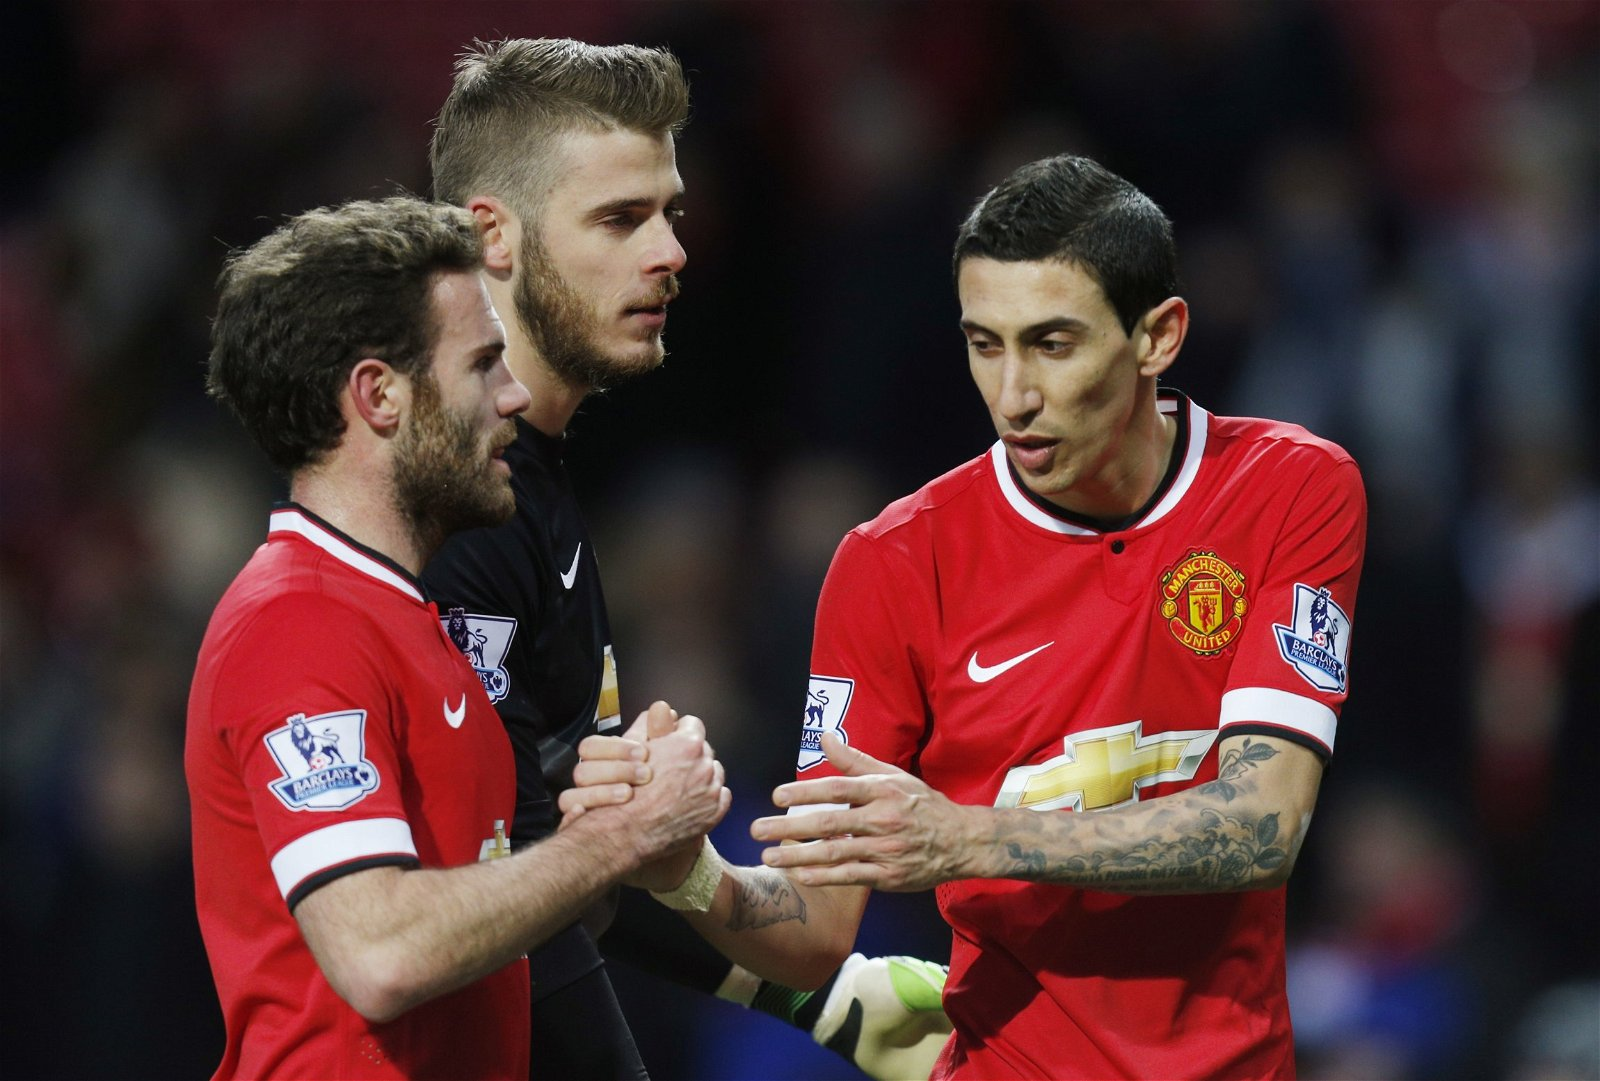 Juan Mata, Angel Di Maria and David De Gea debating on the pitch